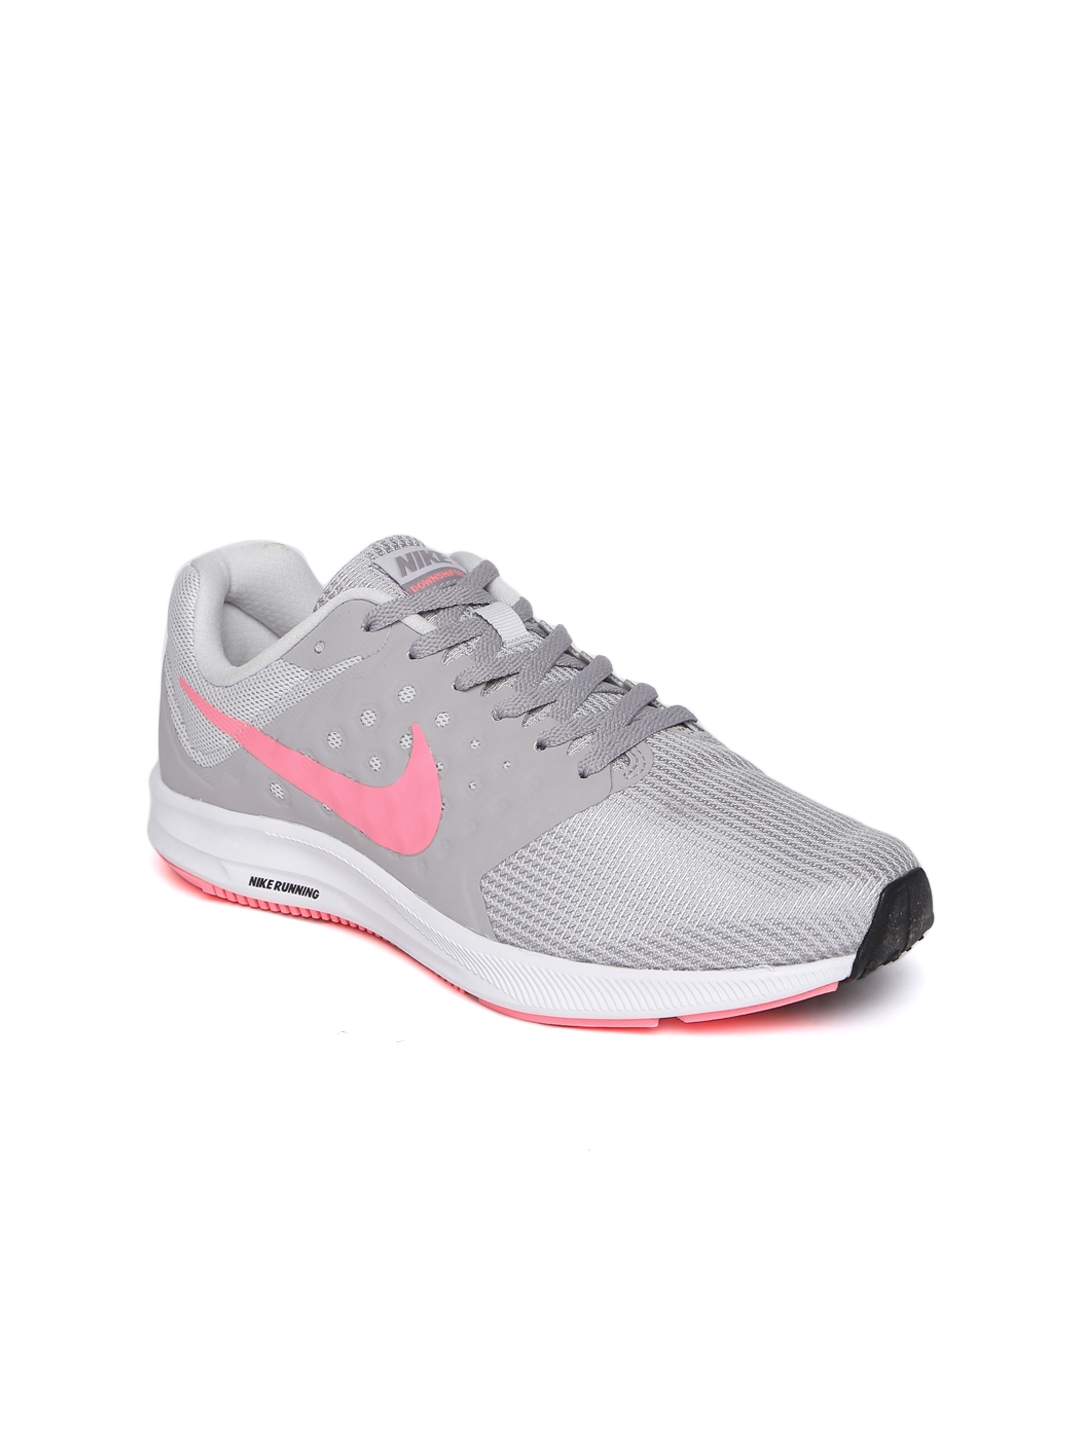 2d4422d58822 Buy Nike Women Grey DOWNSHIFTER 7 Running Shoes - Sports Shoes for ...